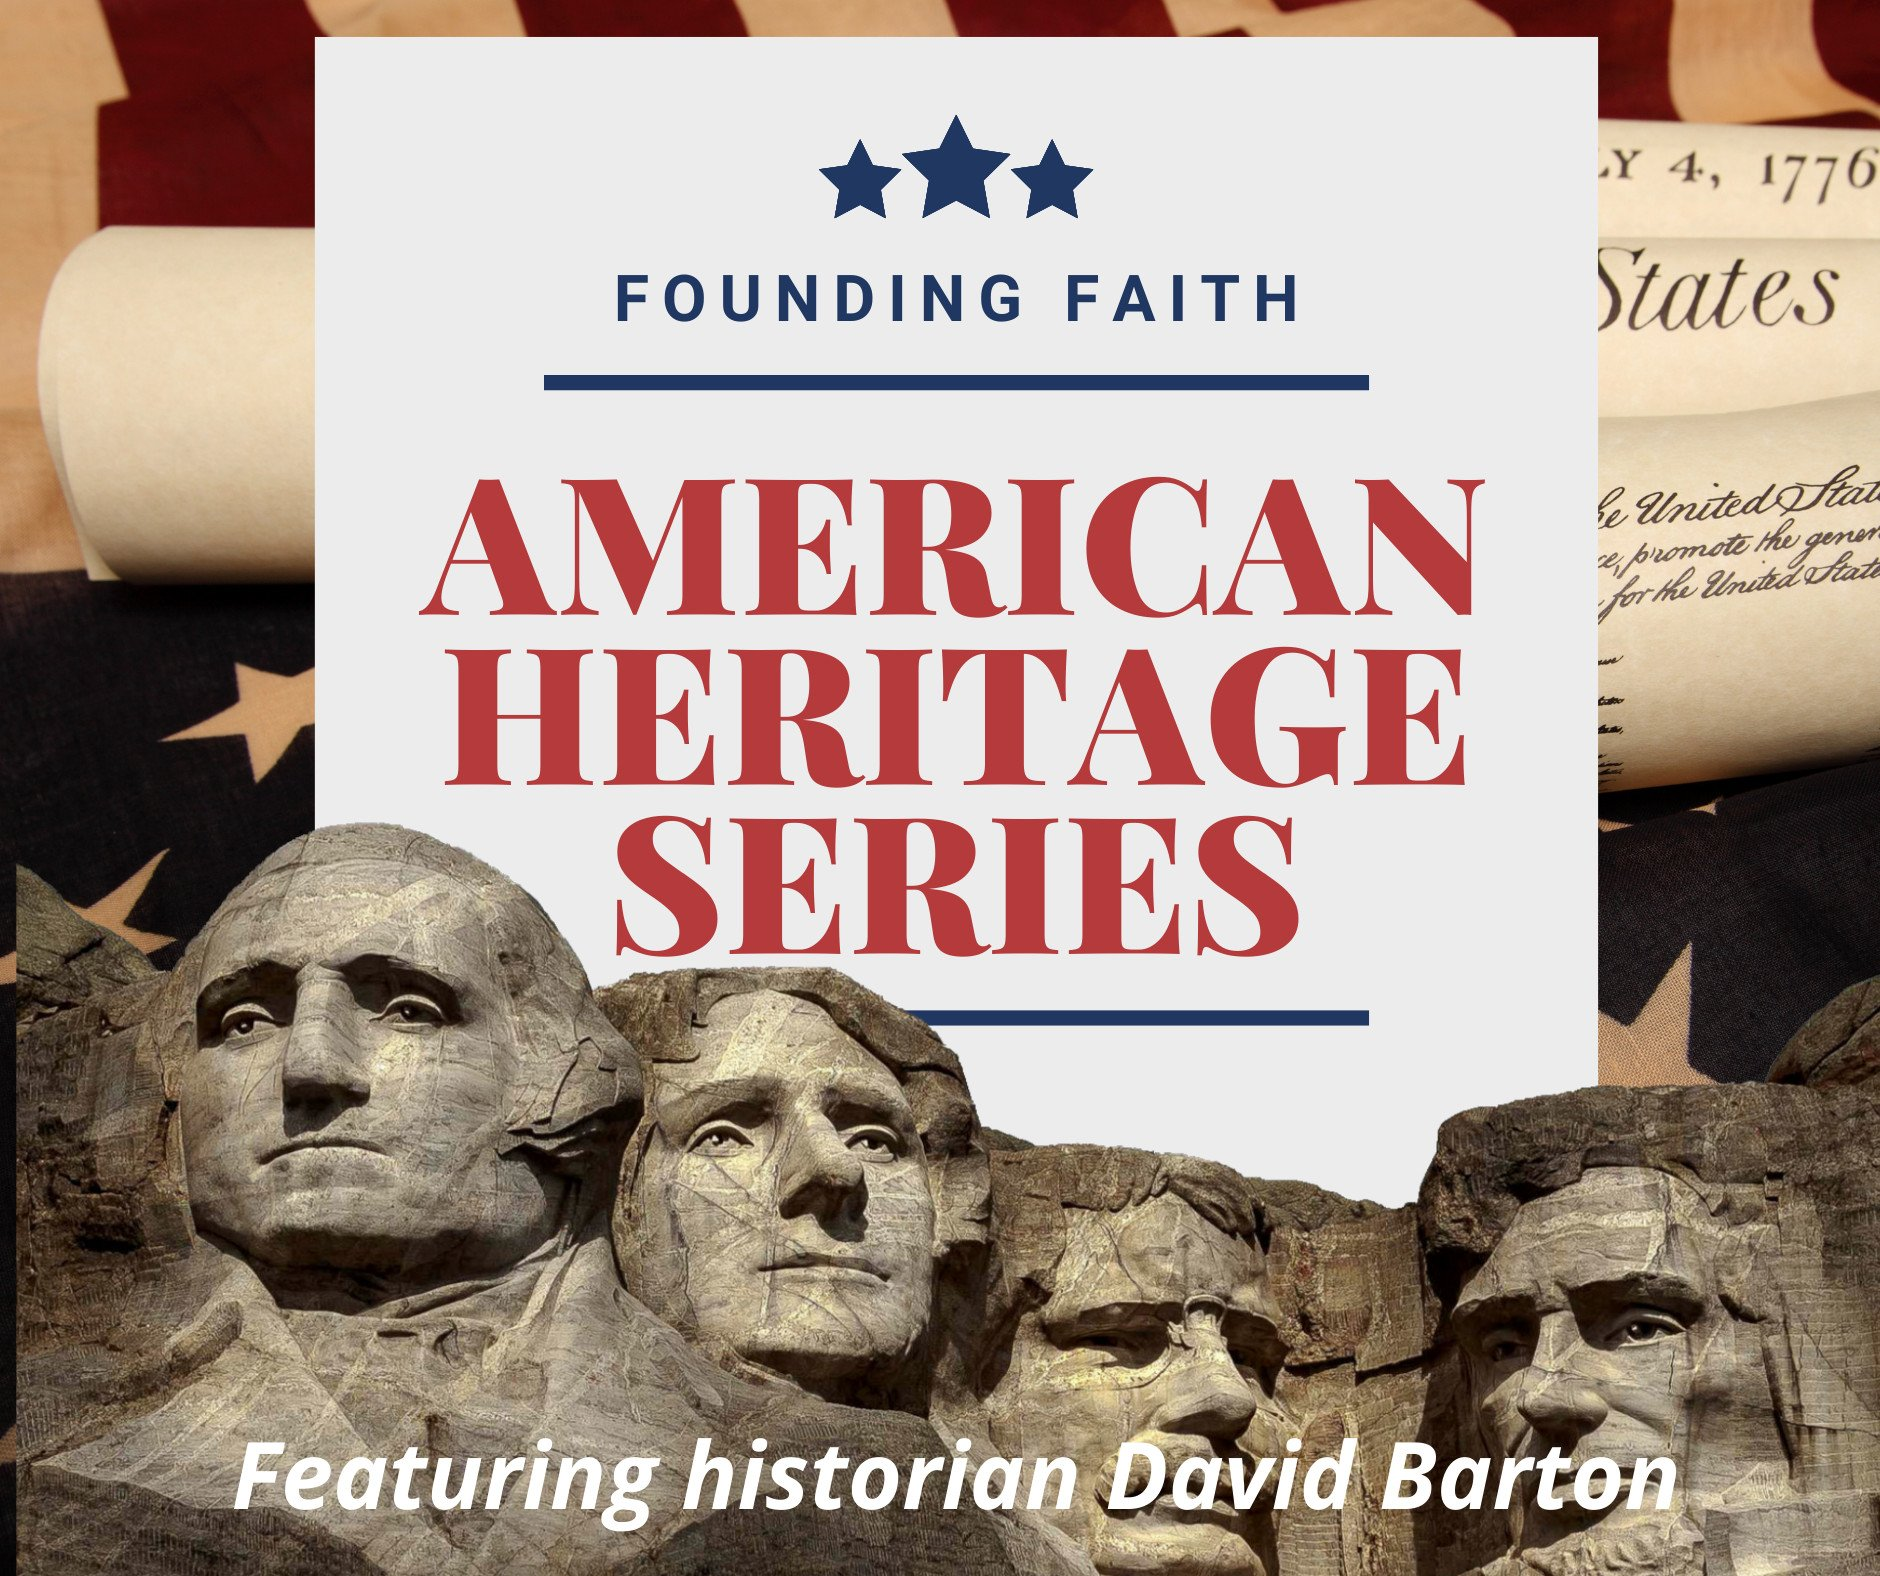 American Heritage Series.Founding Faith